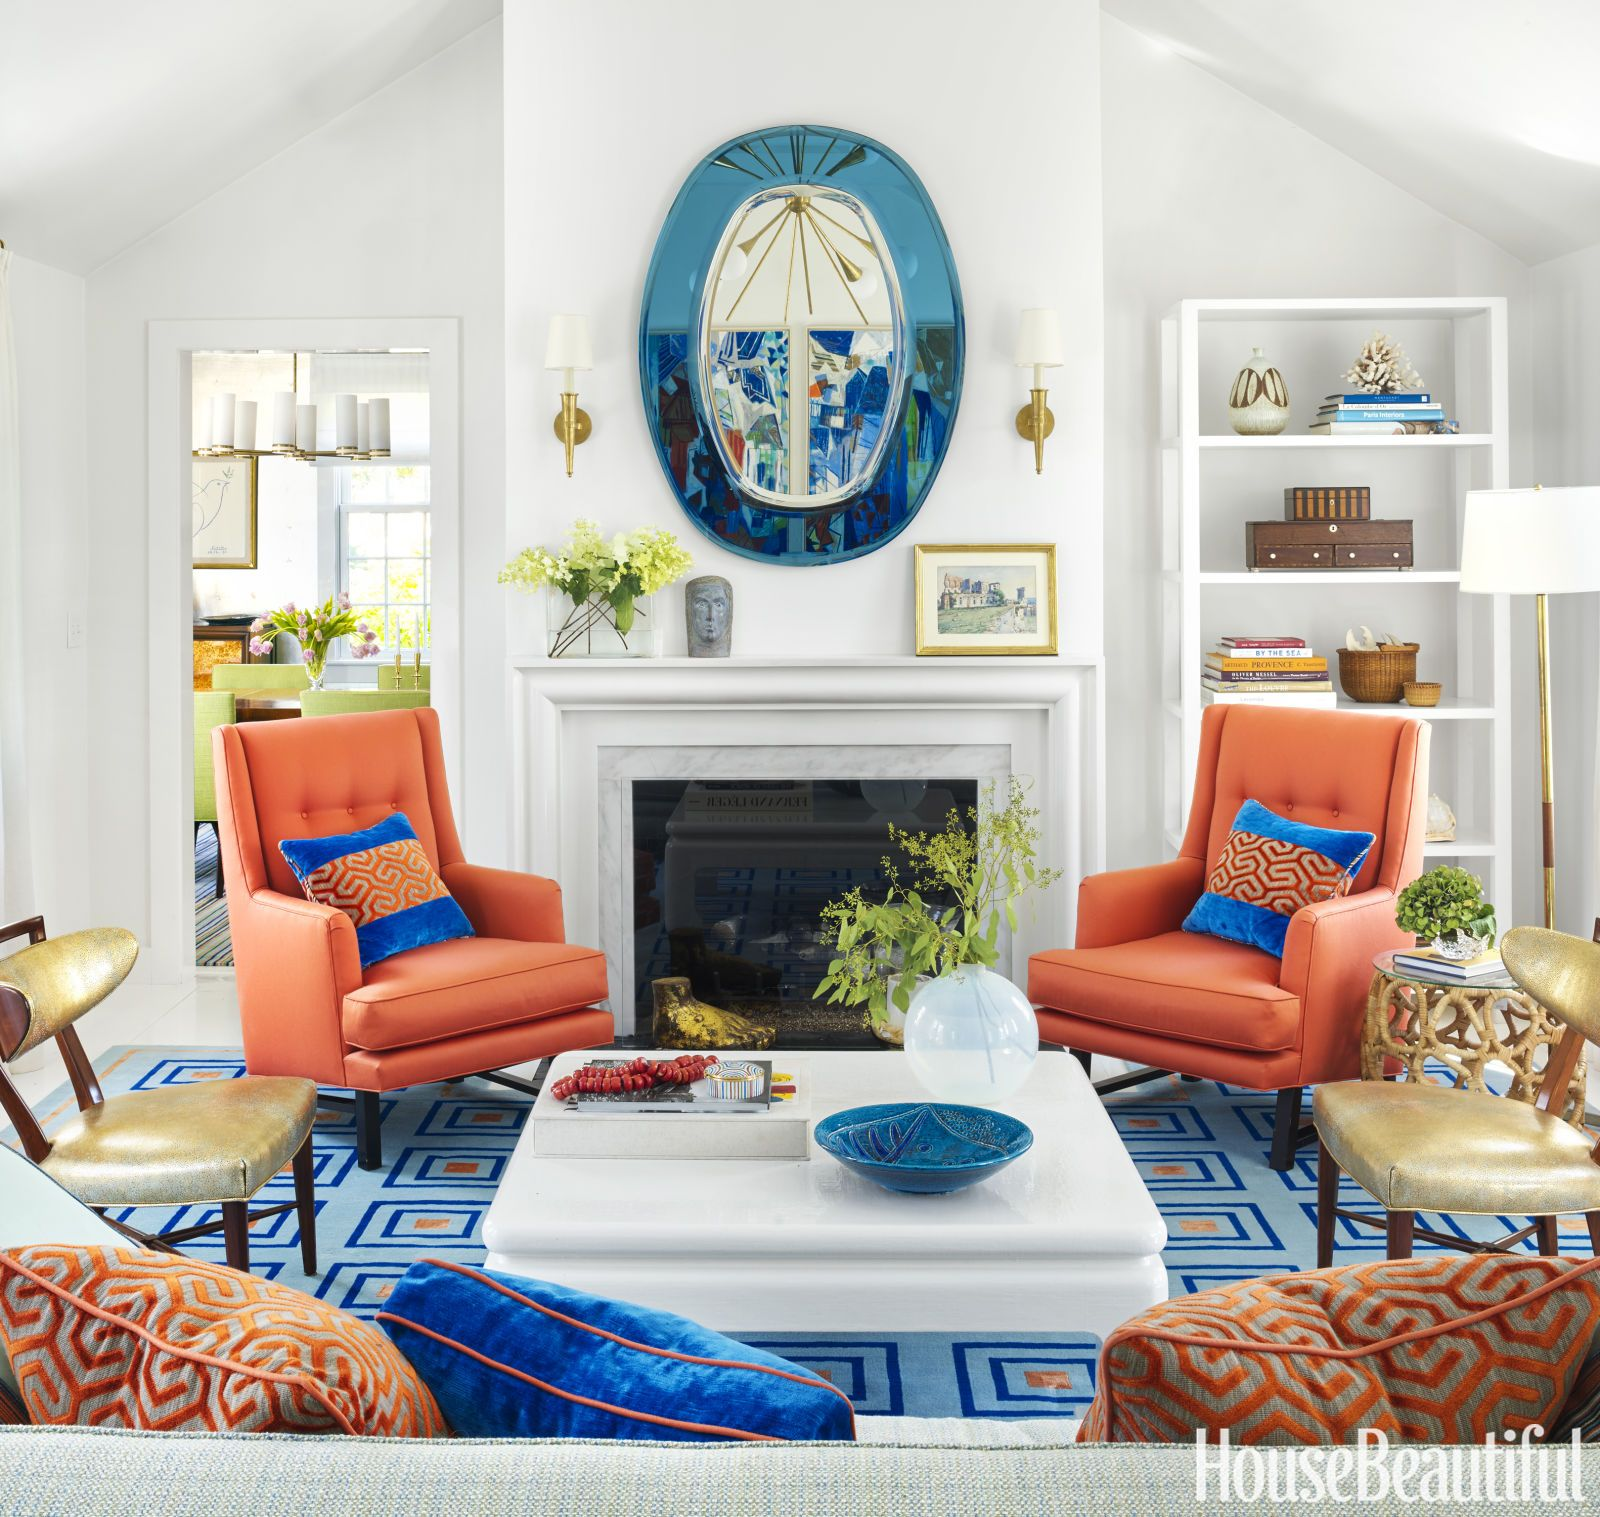 62 Gorgeous Small Living Room Designs: How To Decorate With Complementary Colors